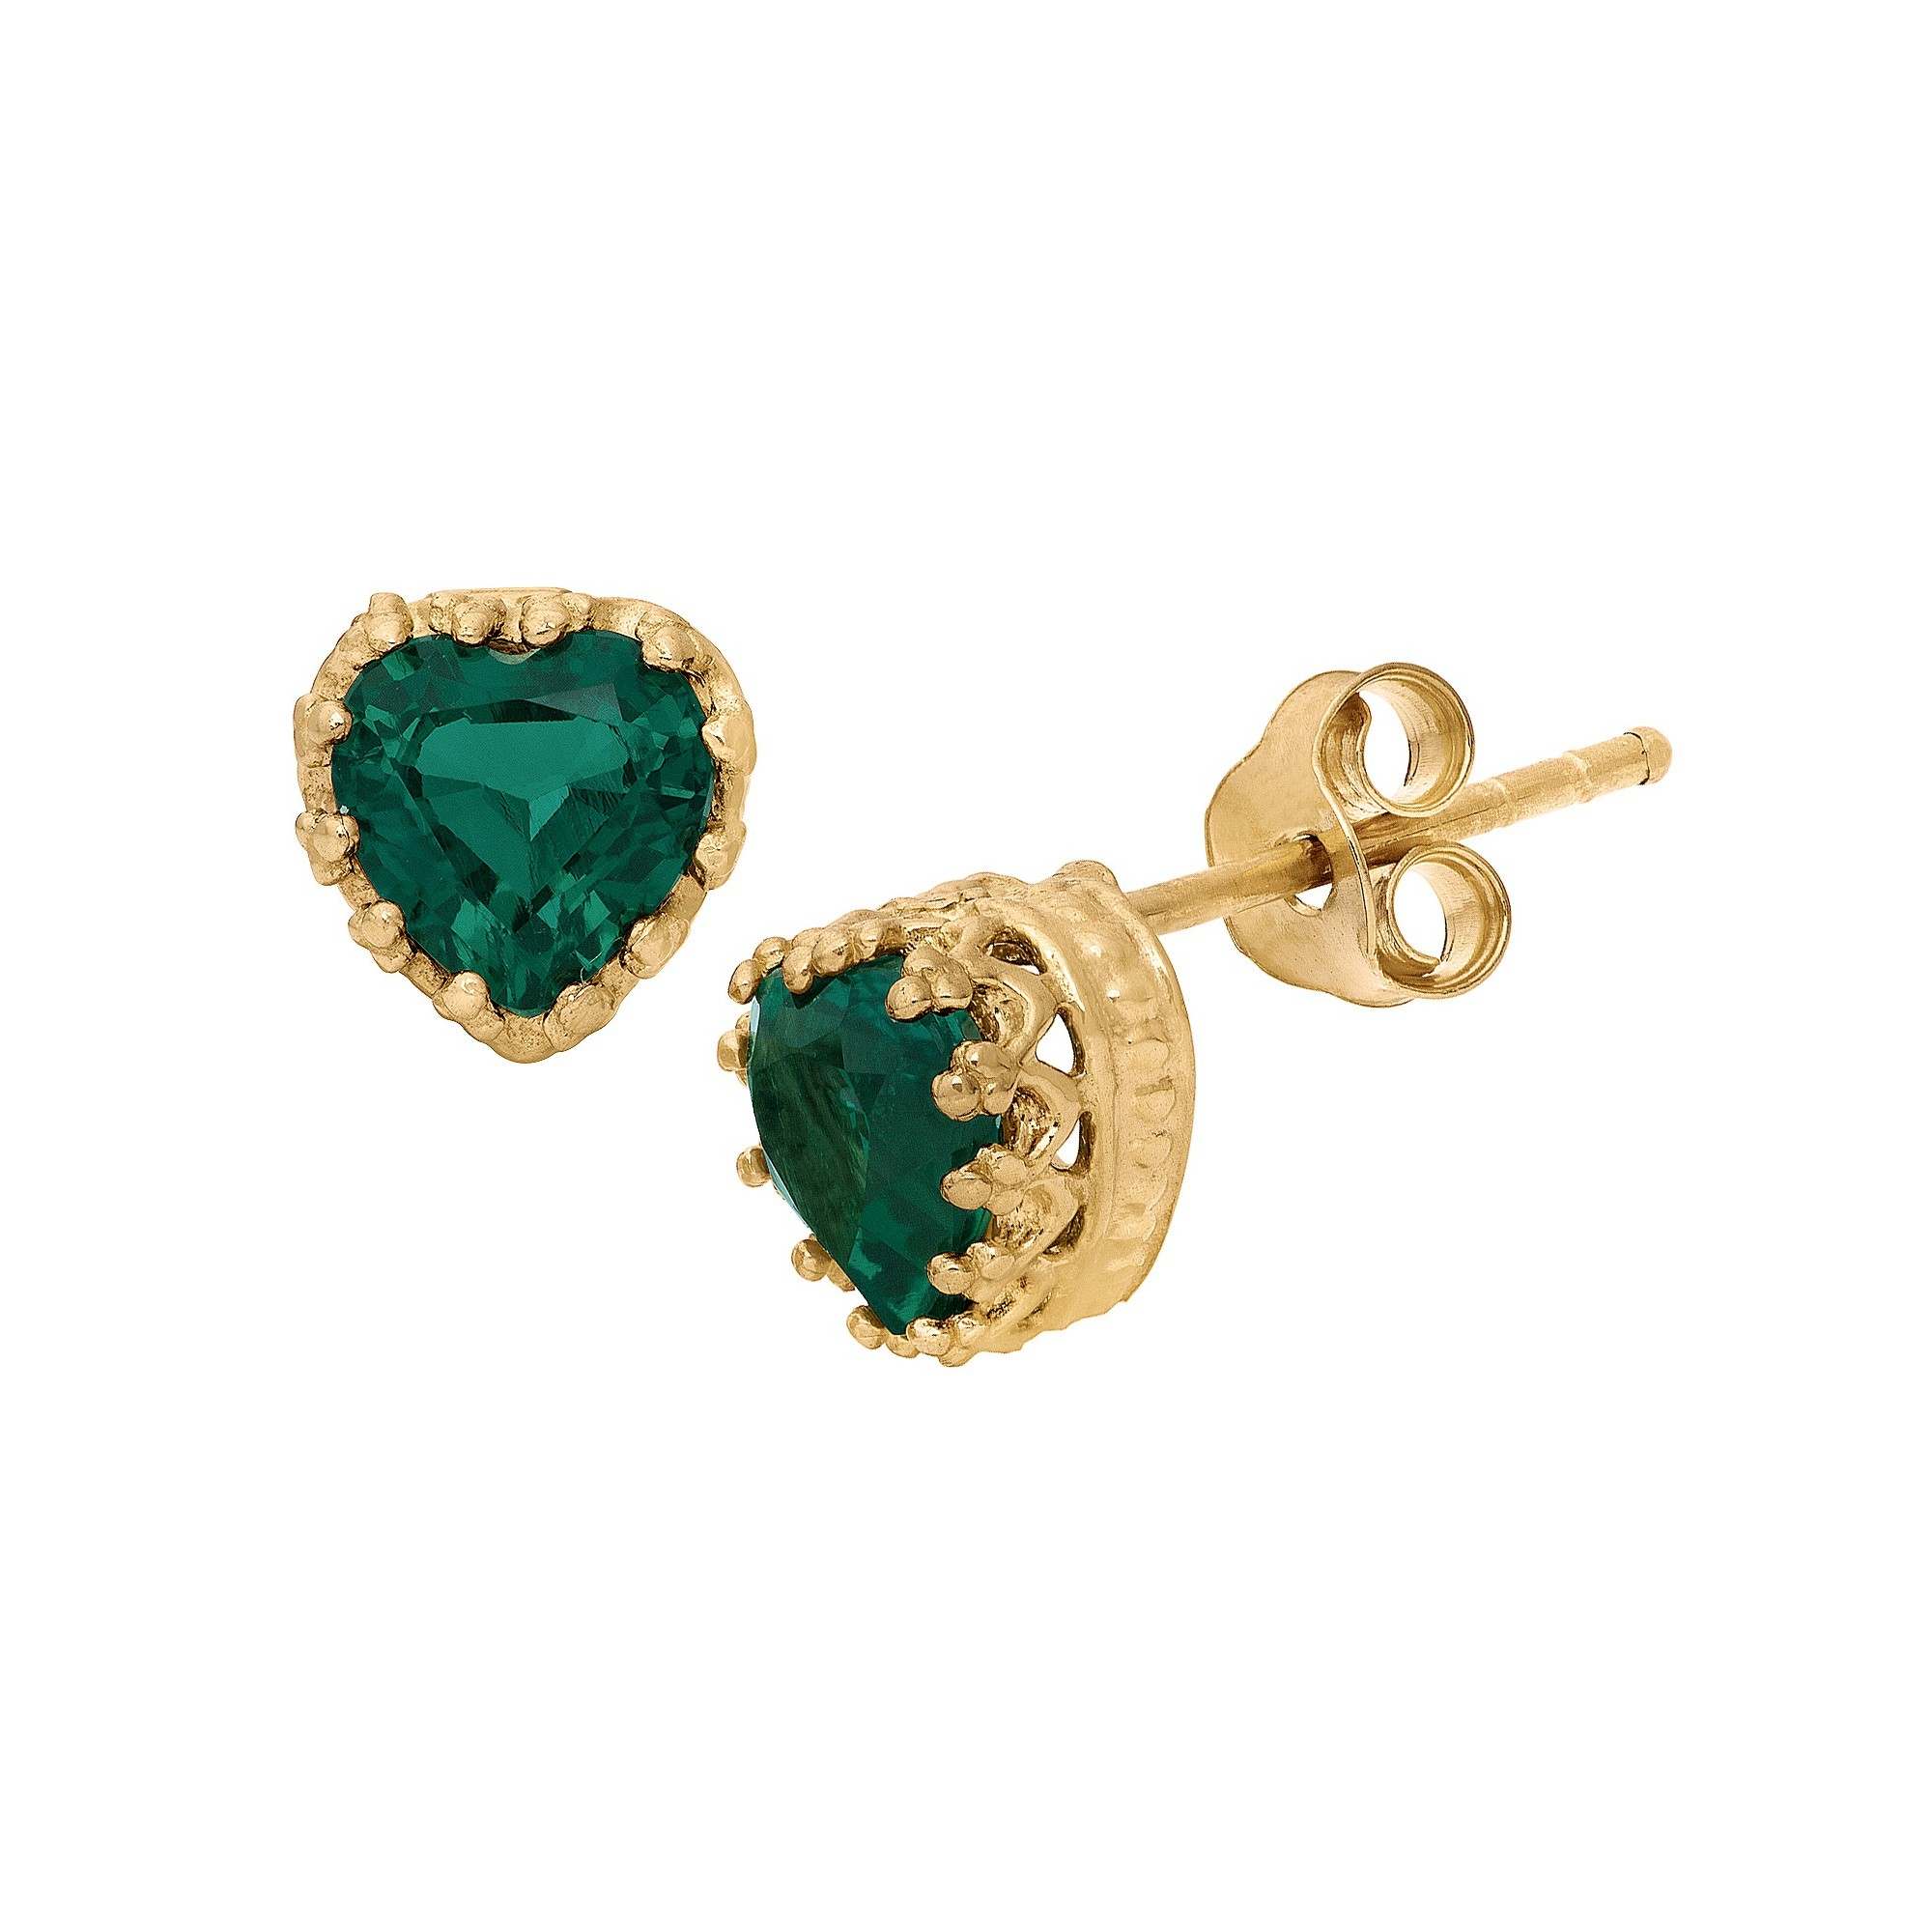 jewellery little two earrings simulated emerald switzerland stone products